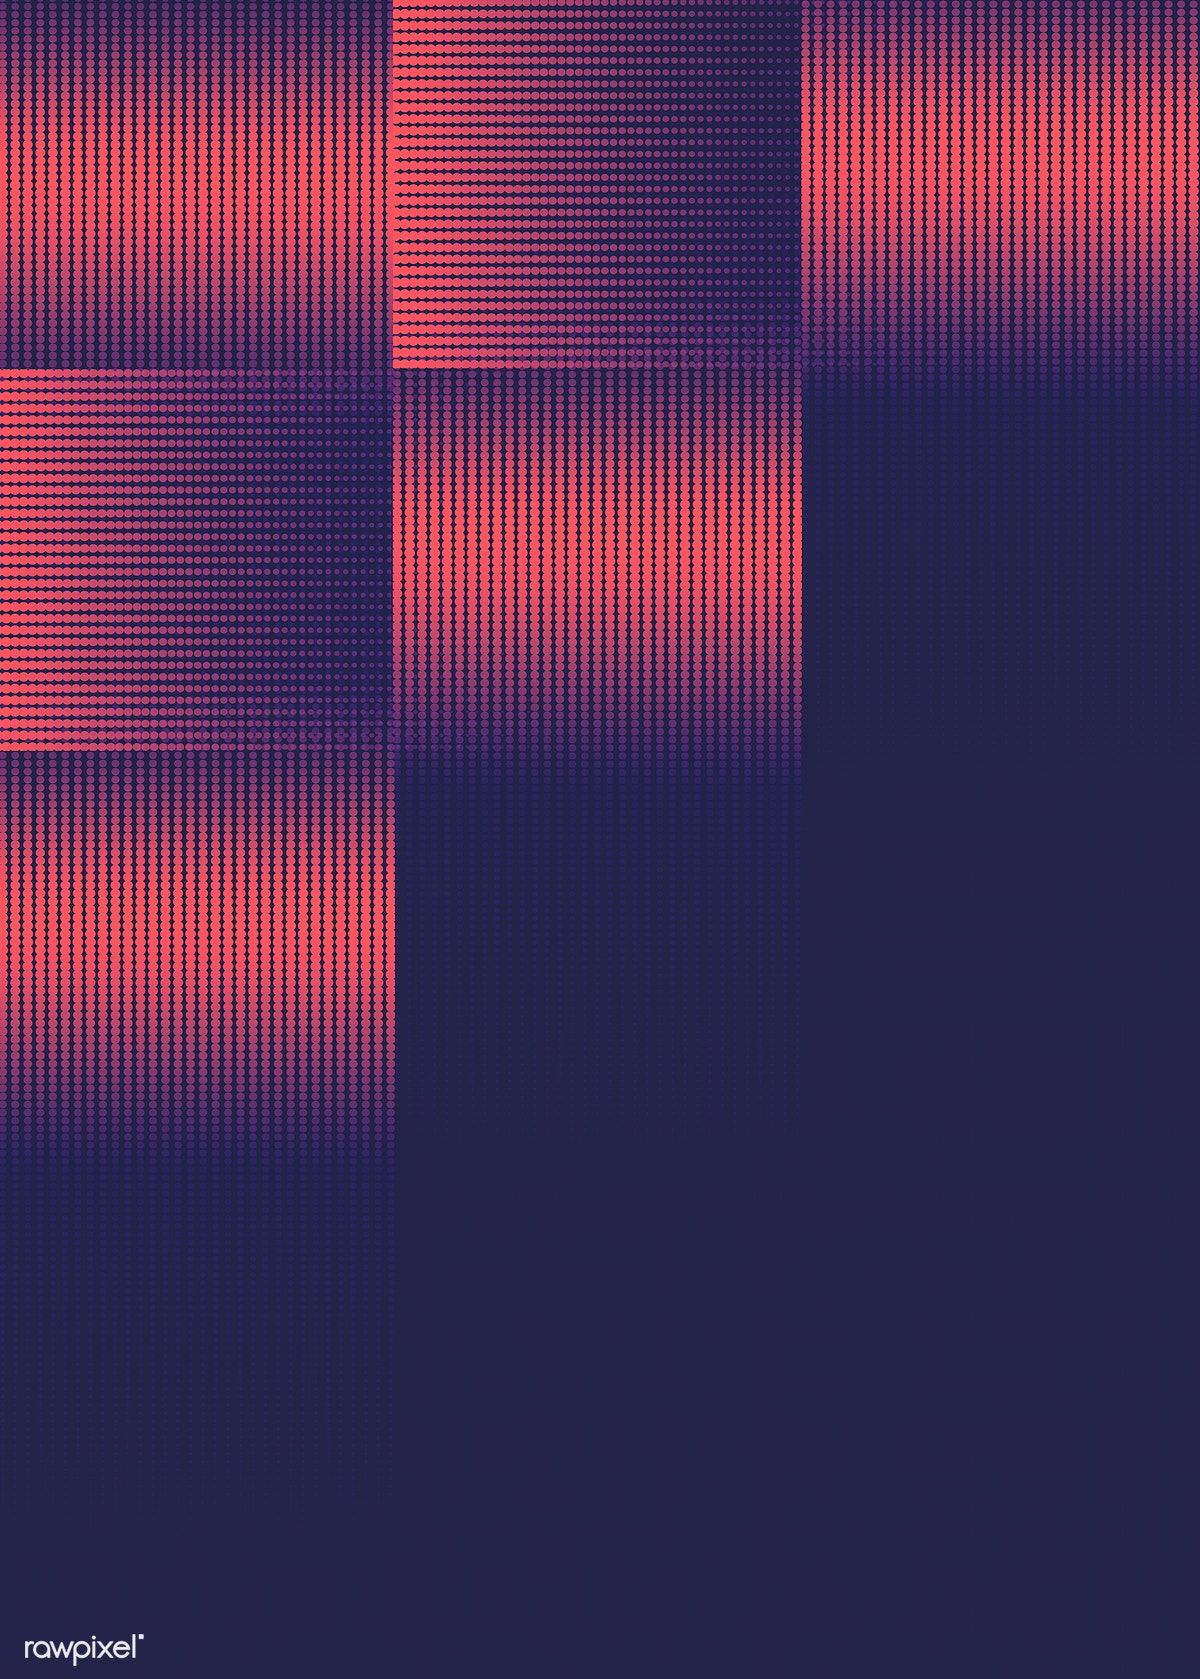 Geometric halftone navy blue background vector | free image by rawpixel.com / Niwat